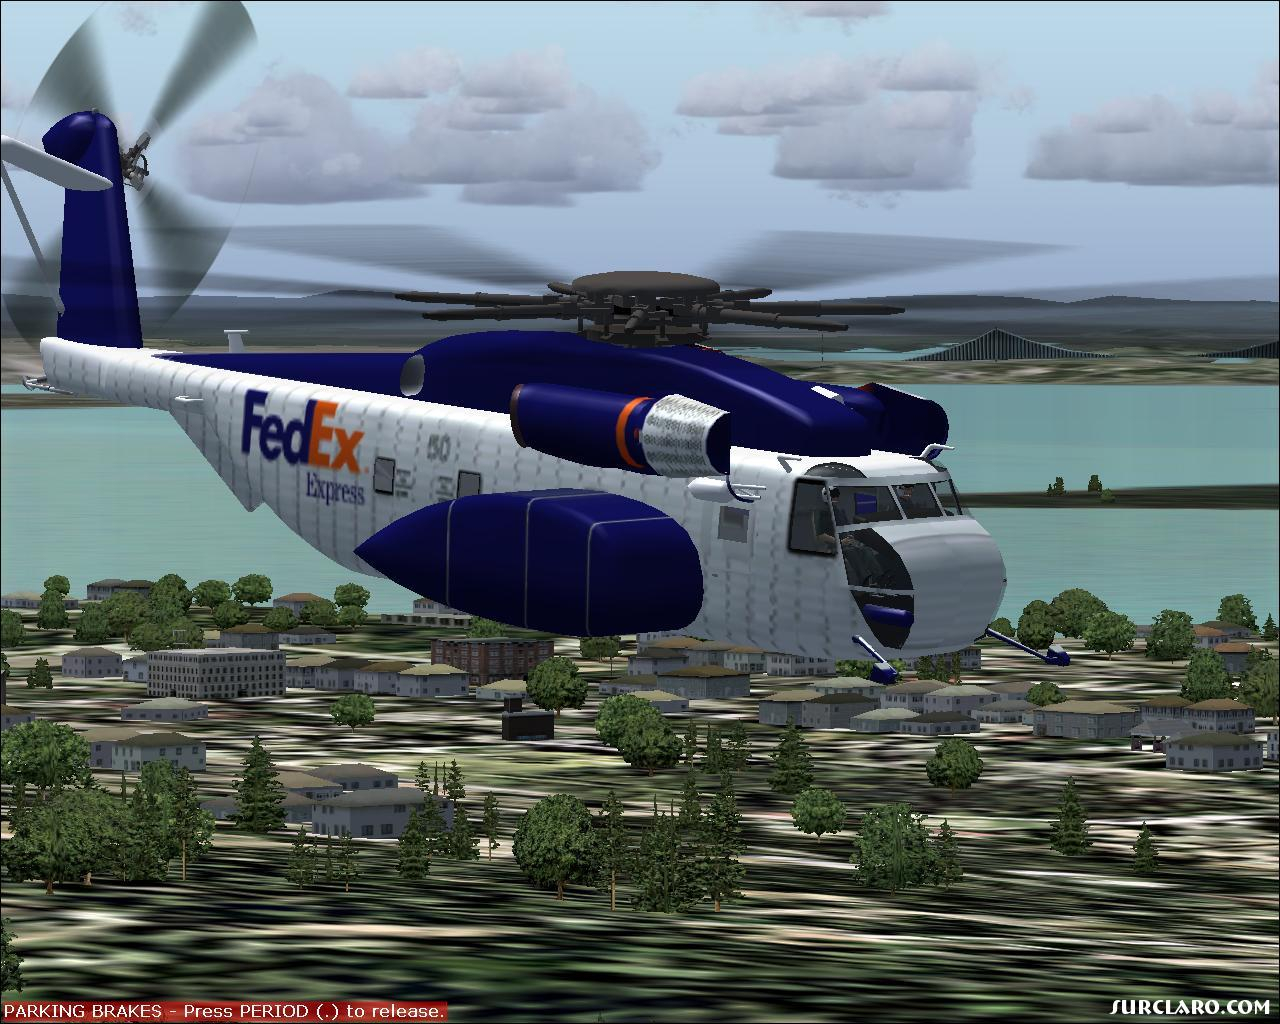 new helicopter with Photo6290 on Wn08013505 likewise 13927141442 likewise 14958477745 additionally Photo6290 as well 9591601253.